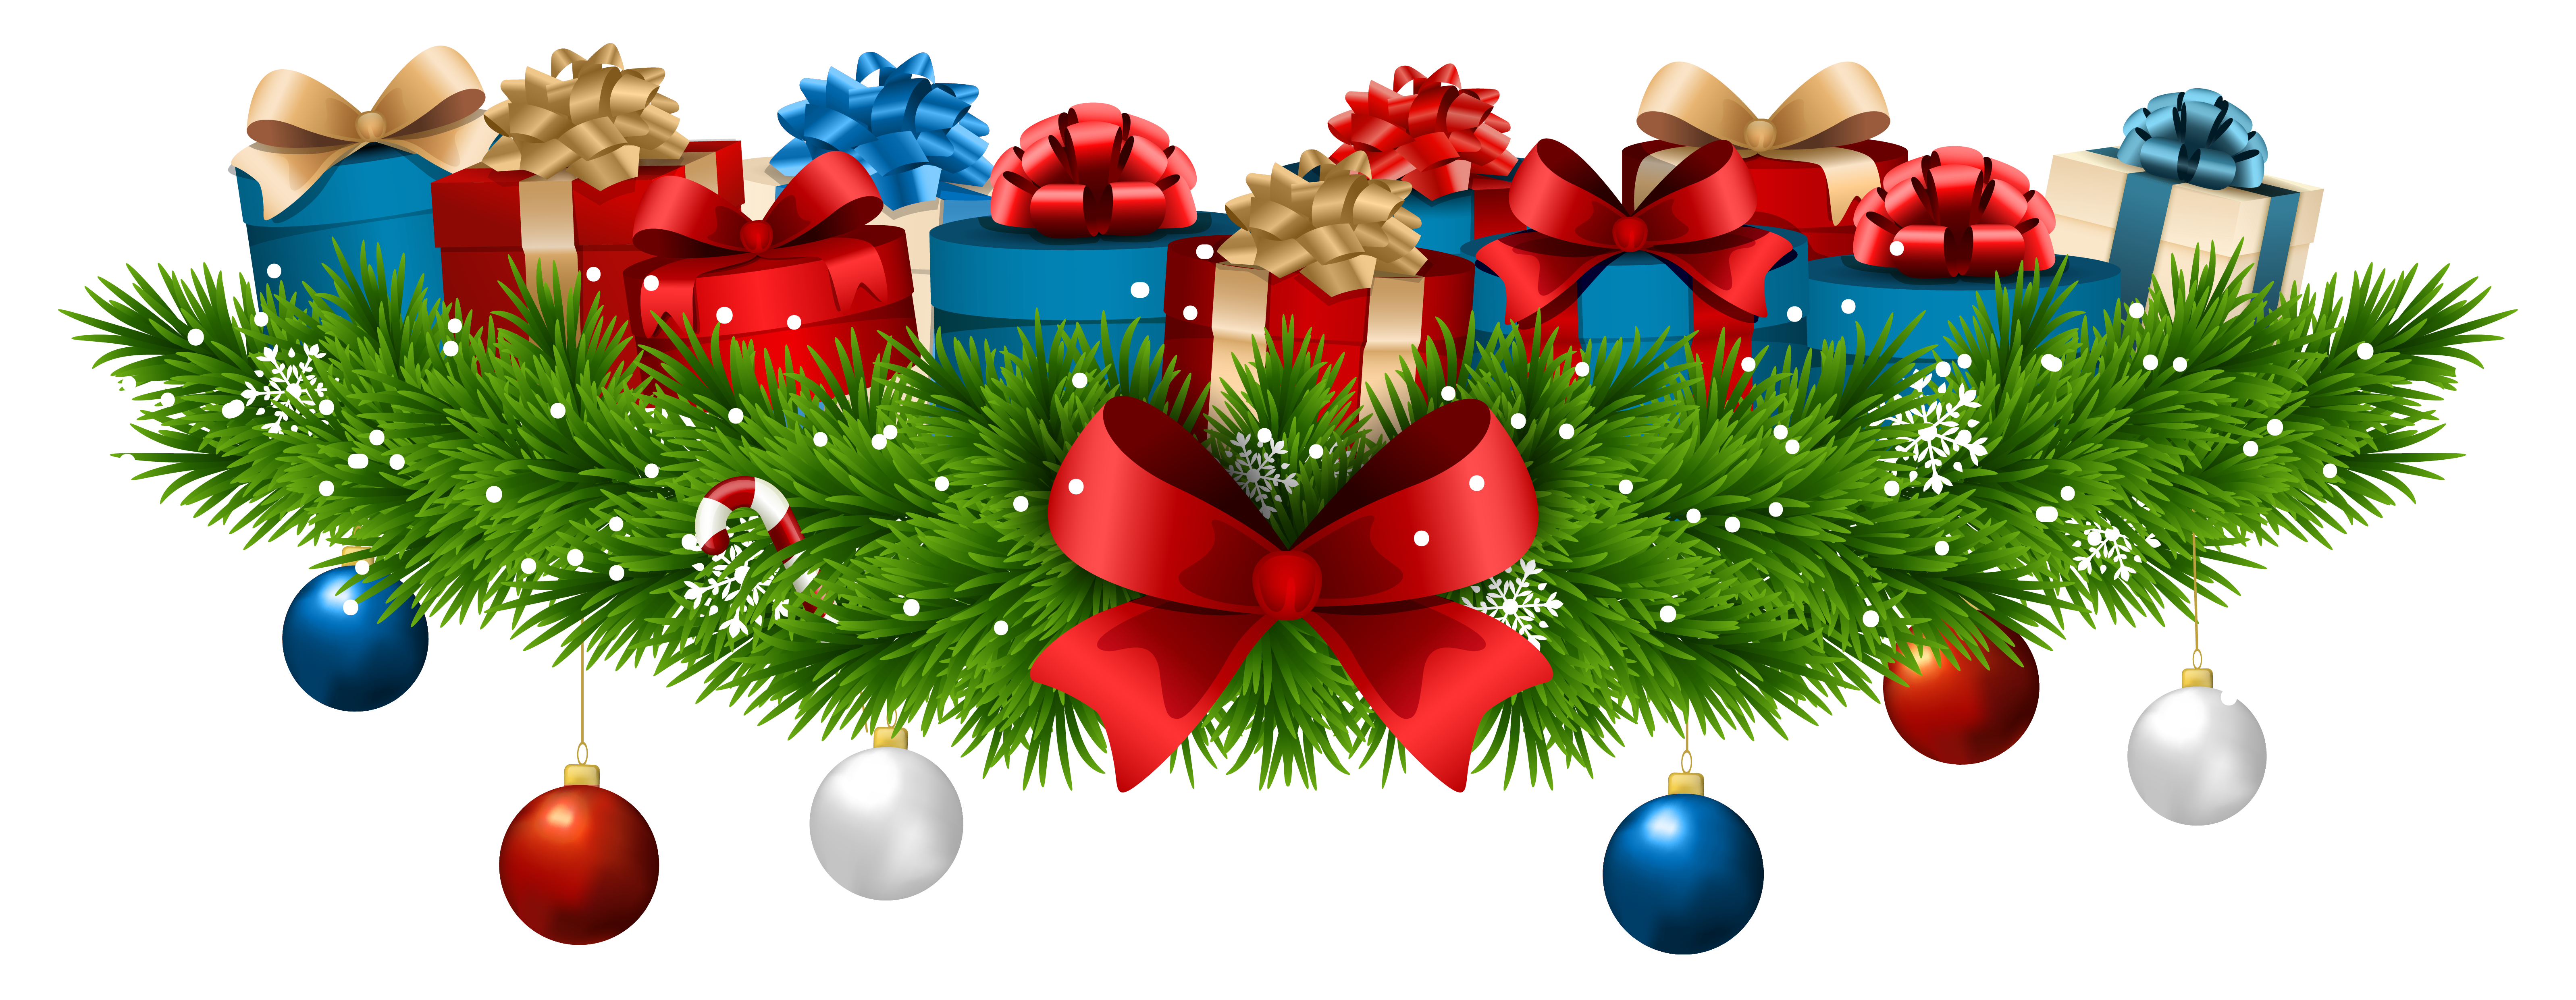 Sleigh clipart tree lighting. Christmas decoration with gifts